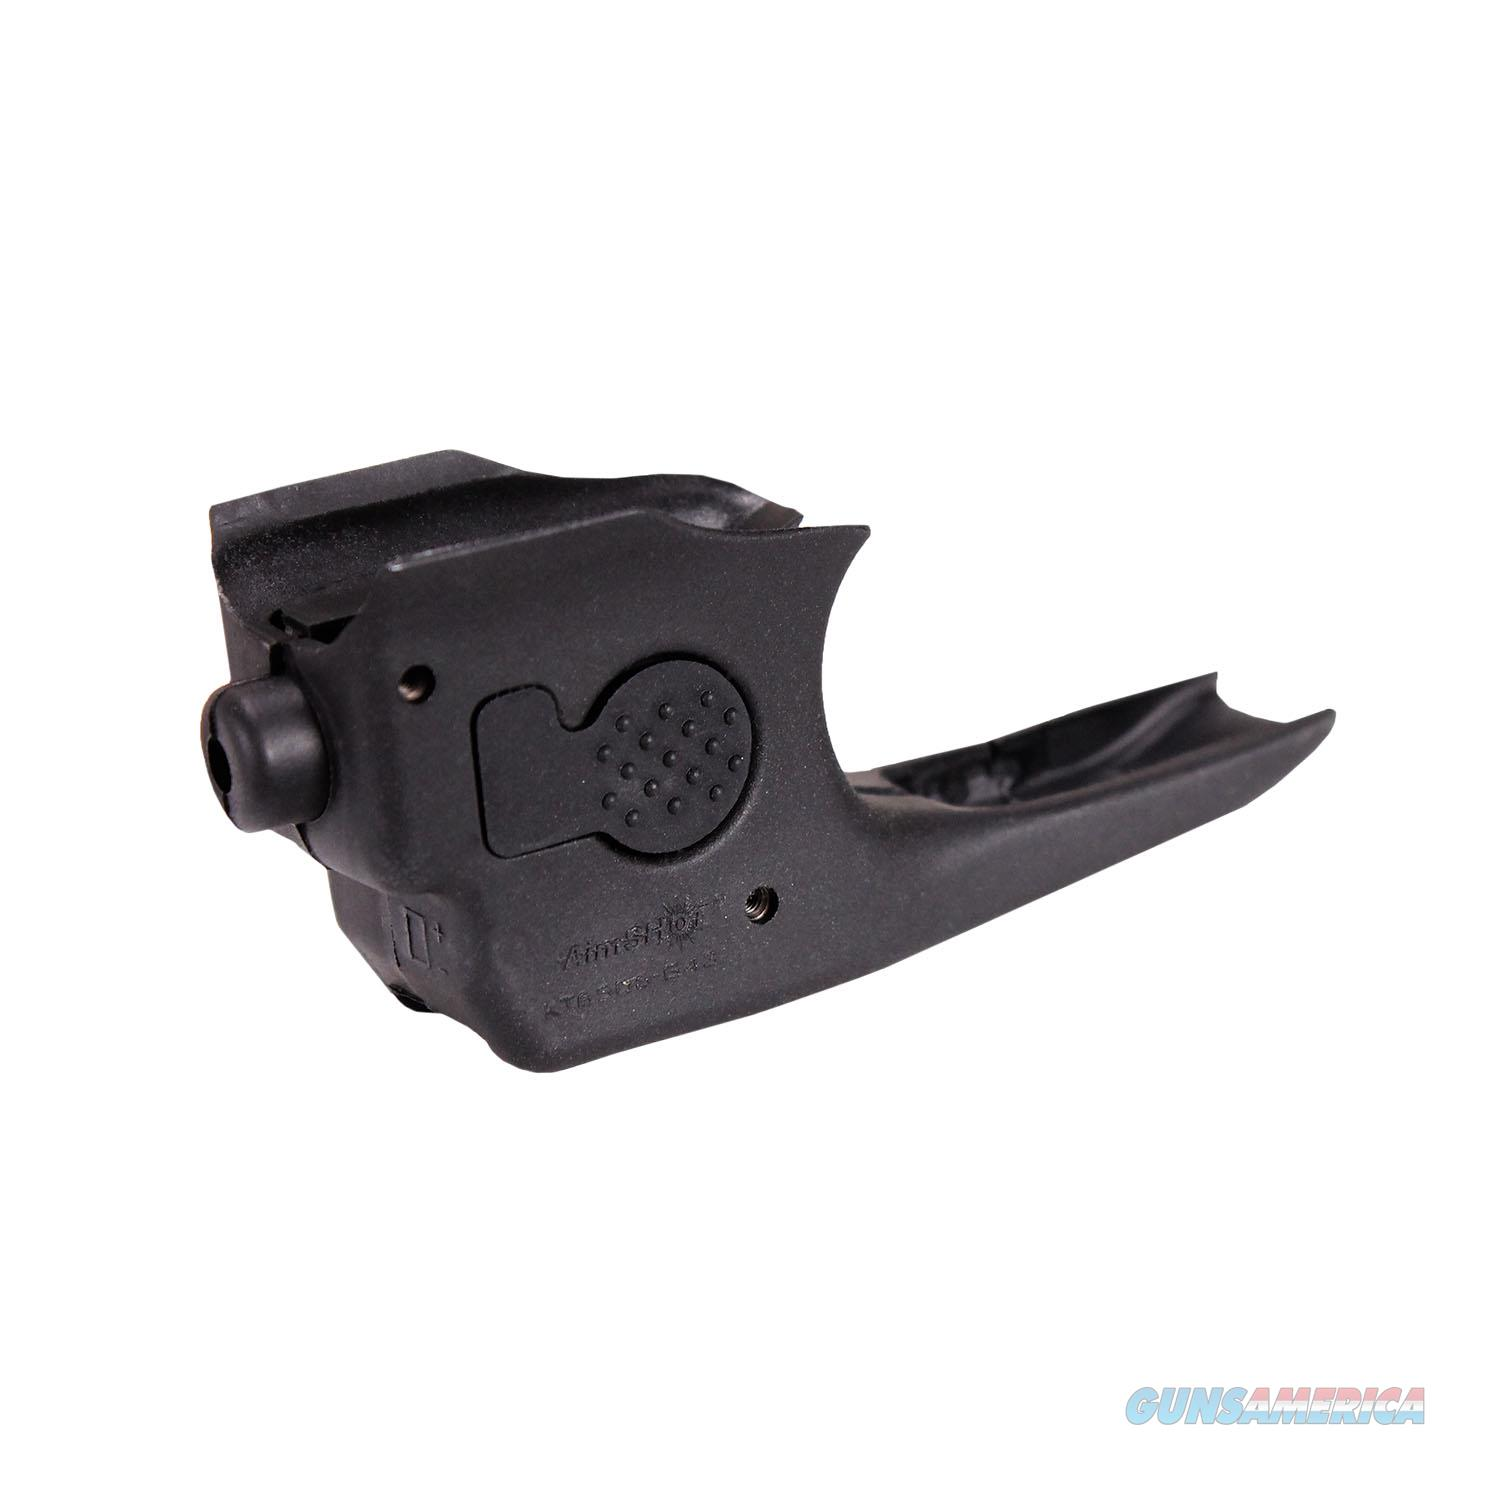 Aim Shot Trigger Guard Mounted Red Laser KT6506G43  Non-Guns > Iron/Metal/Peep Sights